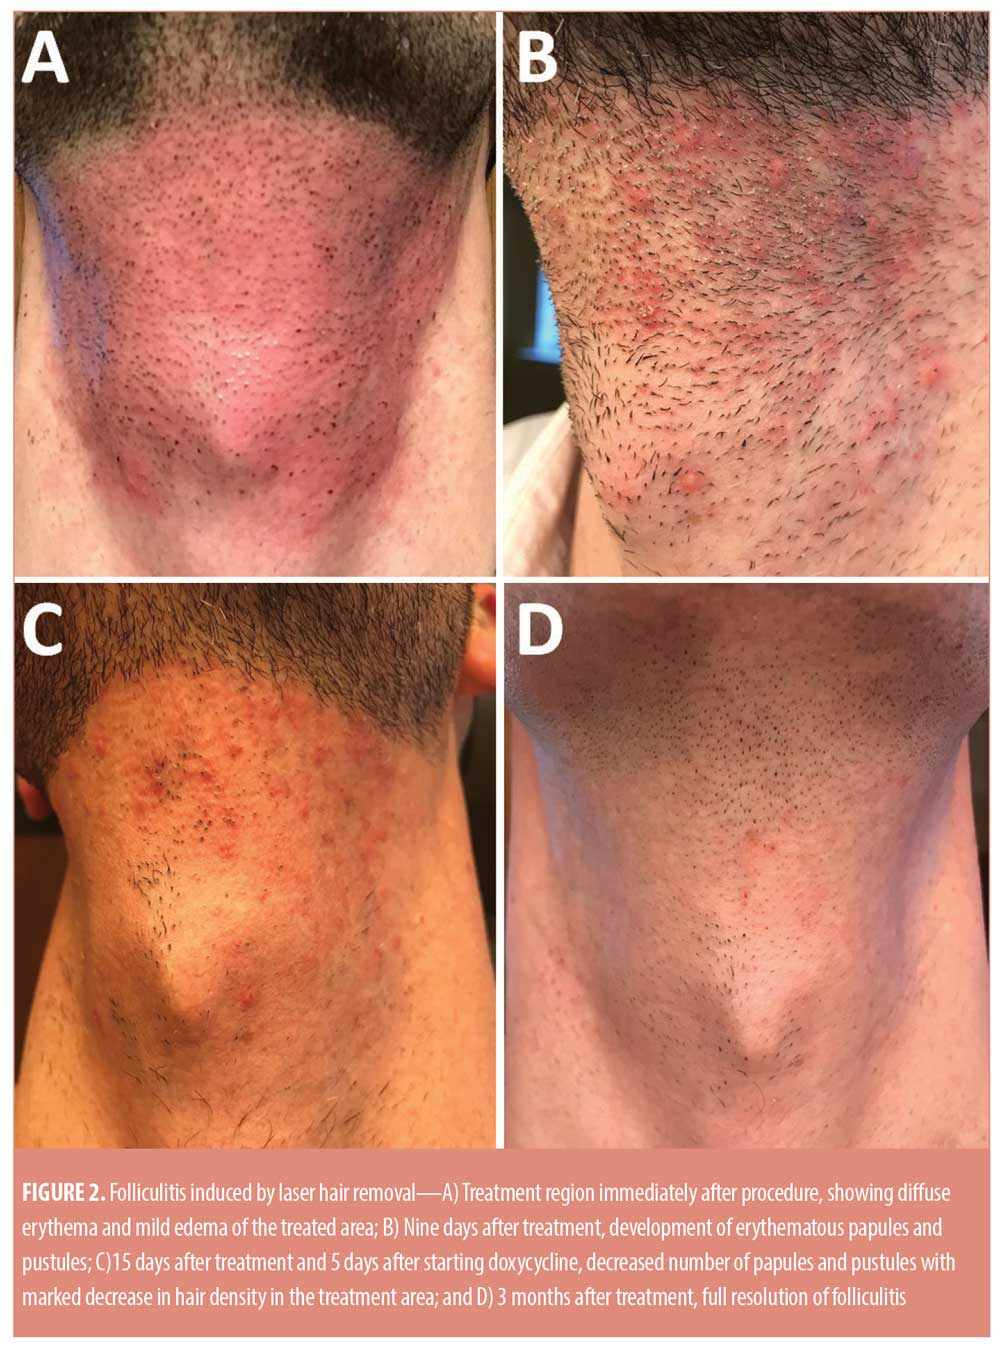 Folliculitis Induced By Laser Hair Removal Proposed Mechanism And Treatment Jcad The Journal Of Clinical And Aesthetic Dermatology